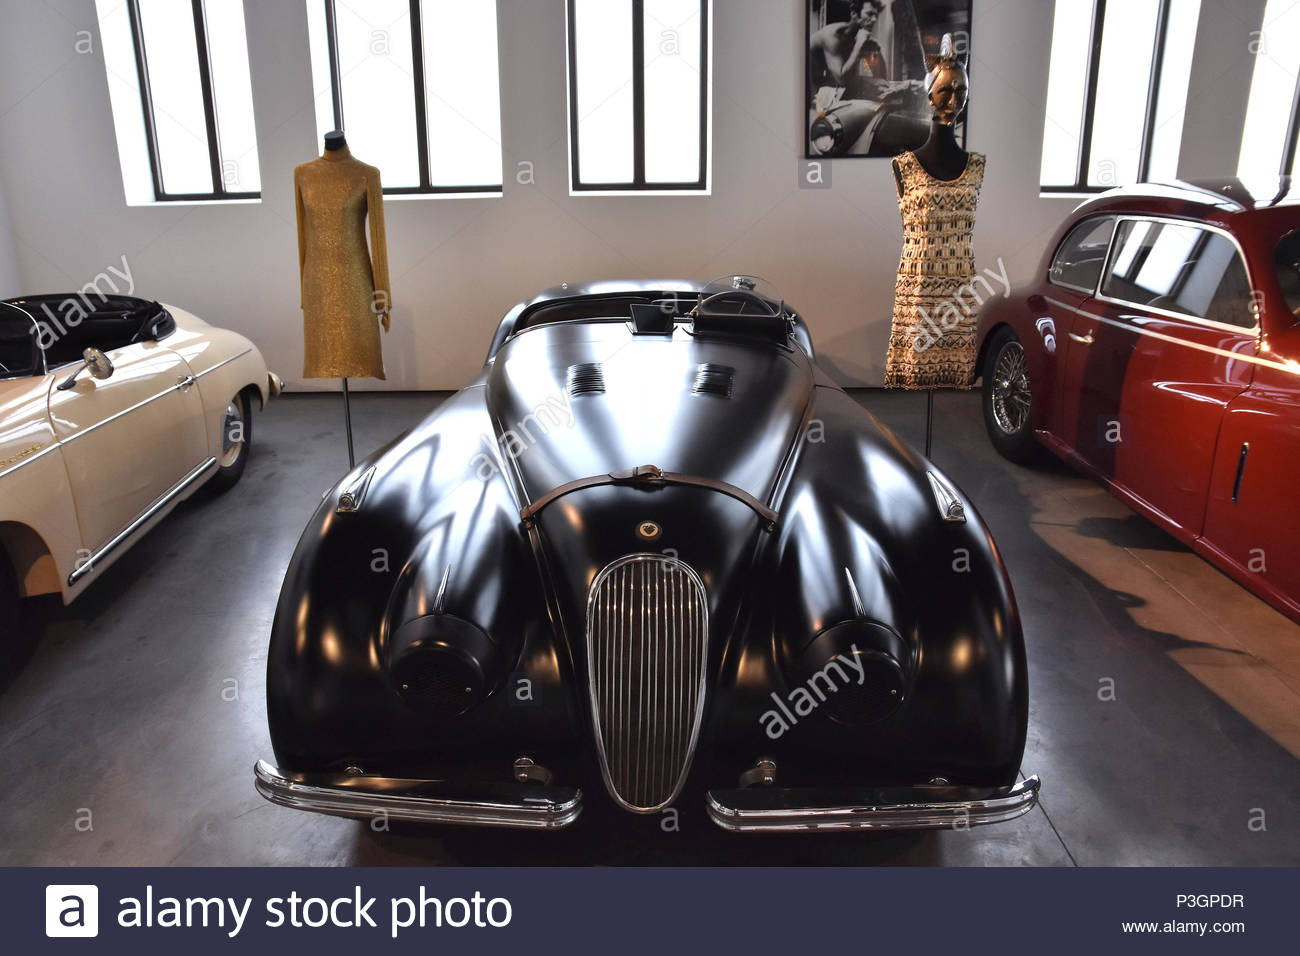 Jaguar XK 120 roadster 1954 sports car displayed at Museum of Automobiles (Museo Automovilístico ) in Malaga Spain Europe. - Stock Image